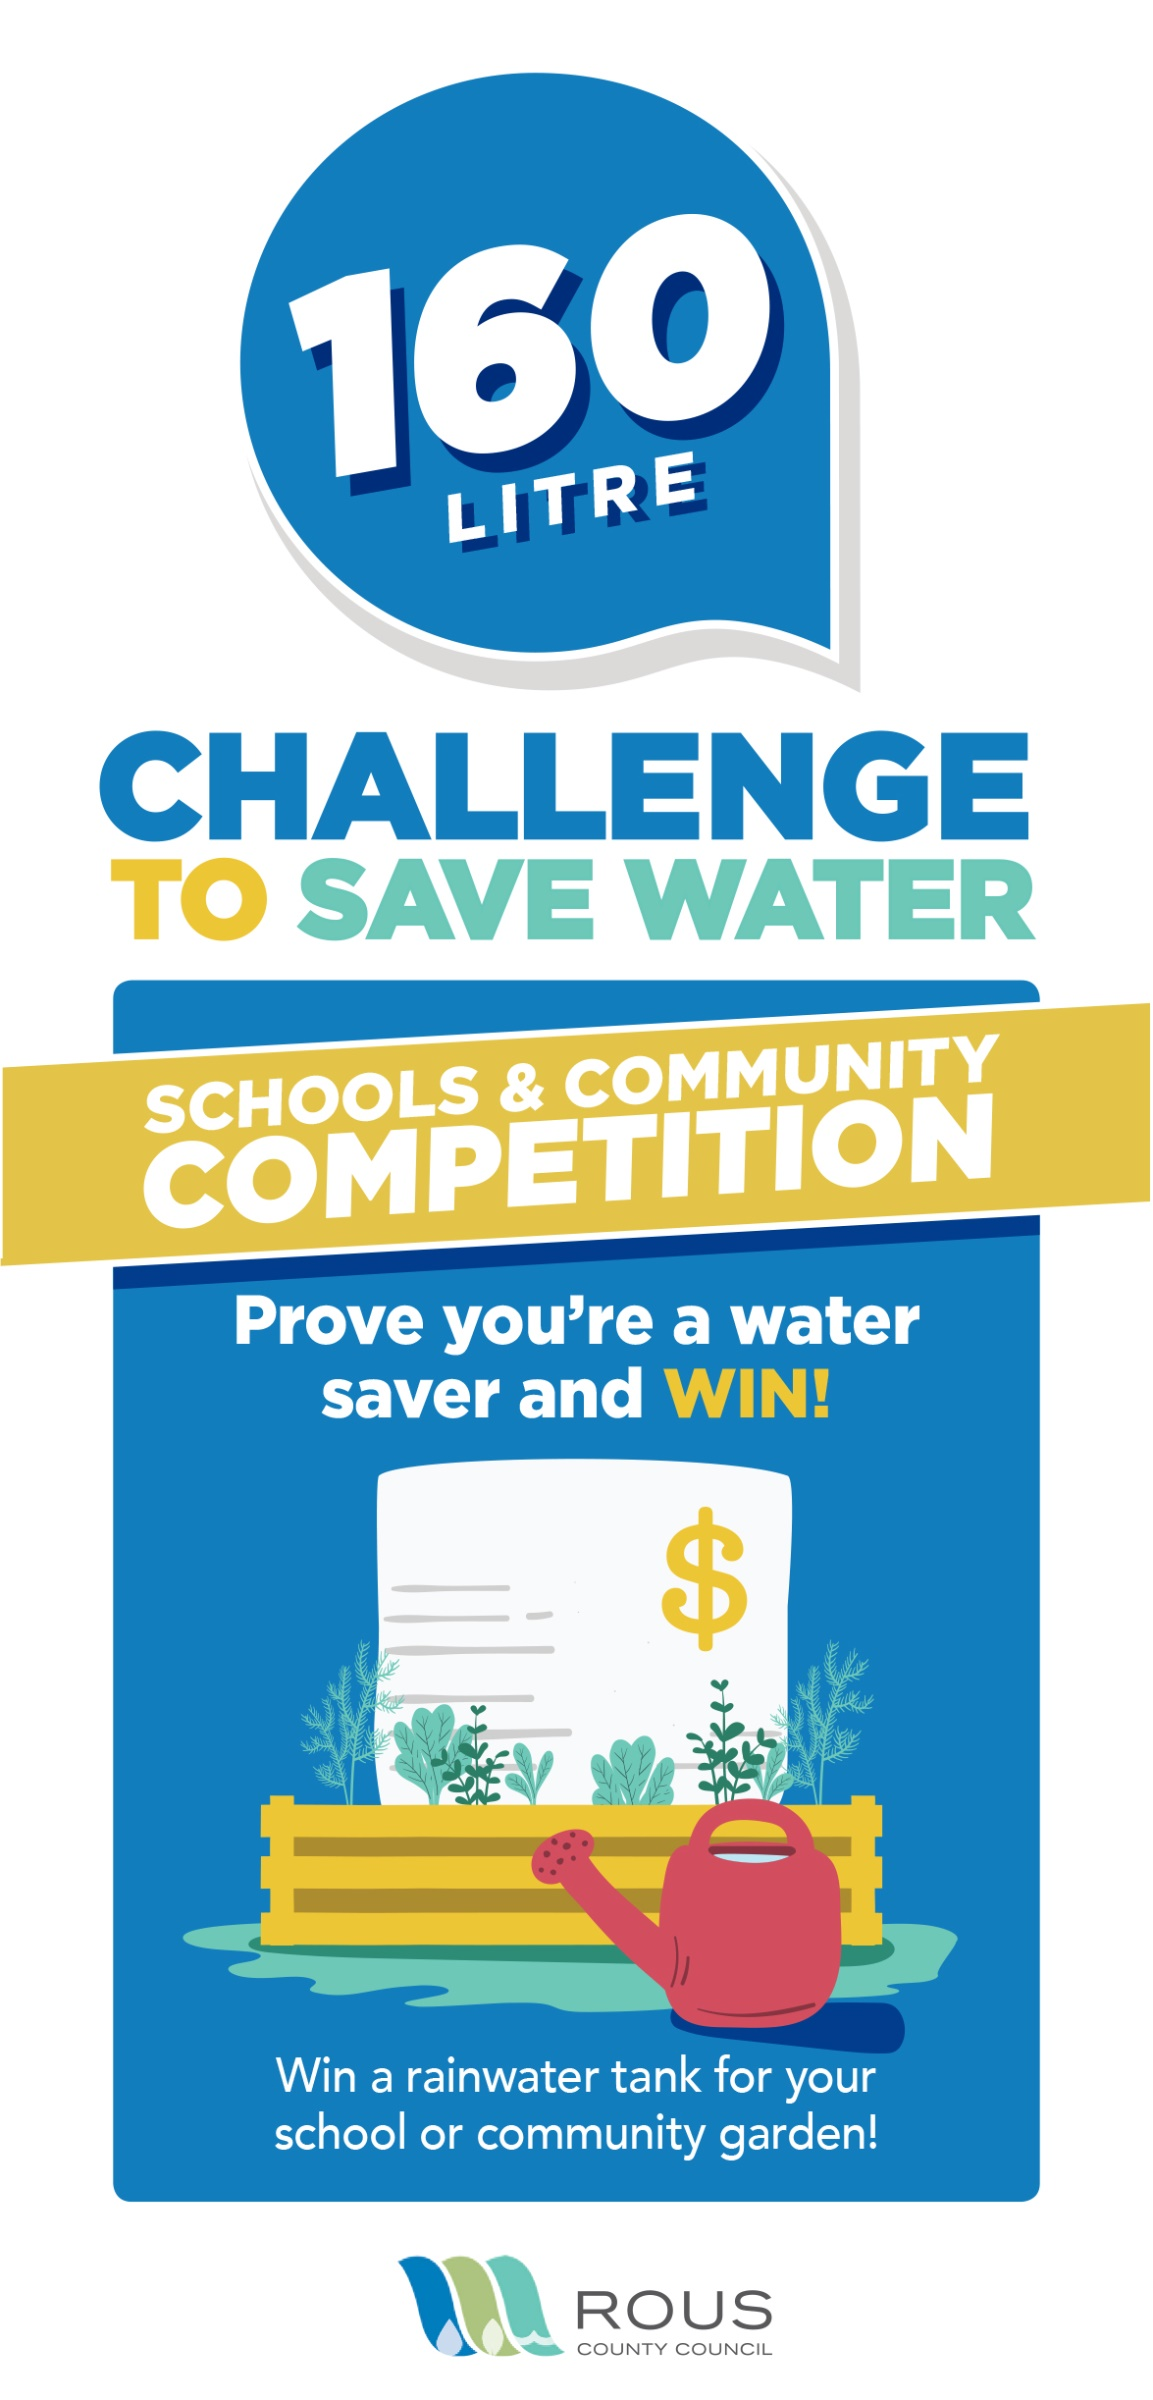 Schools and Community Competition